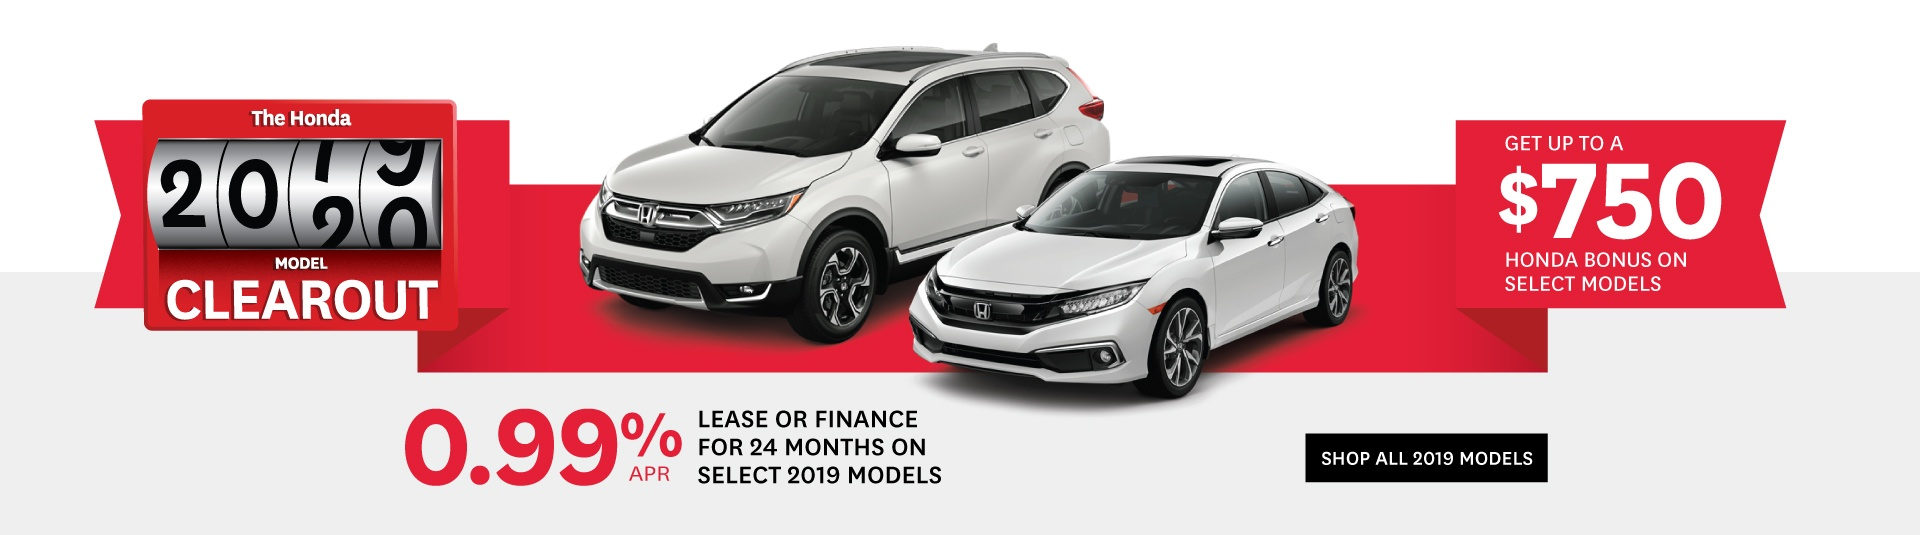 Goderich Honda Model Clearout 2019